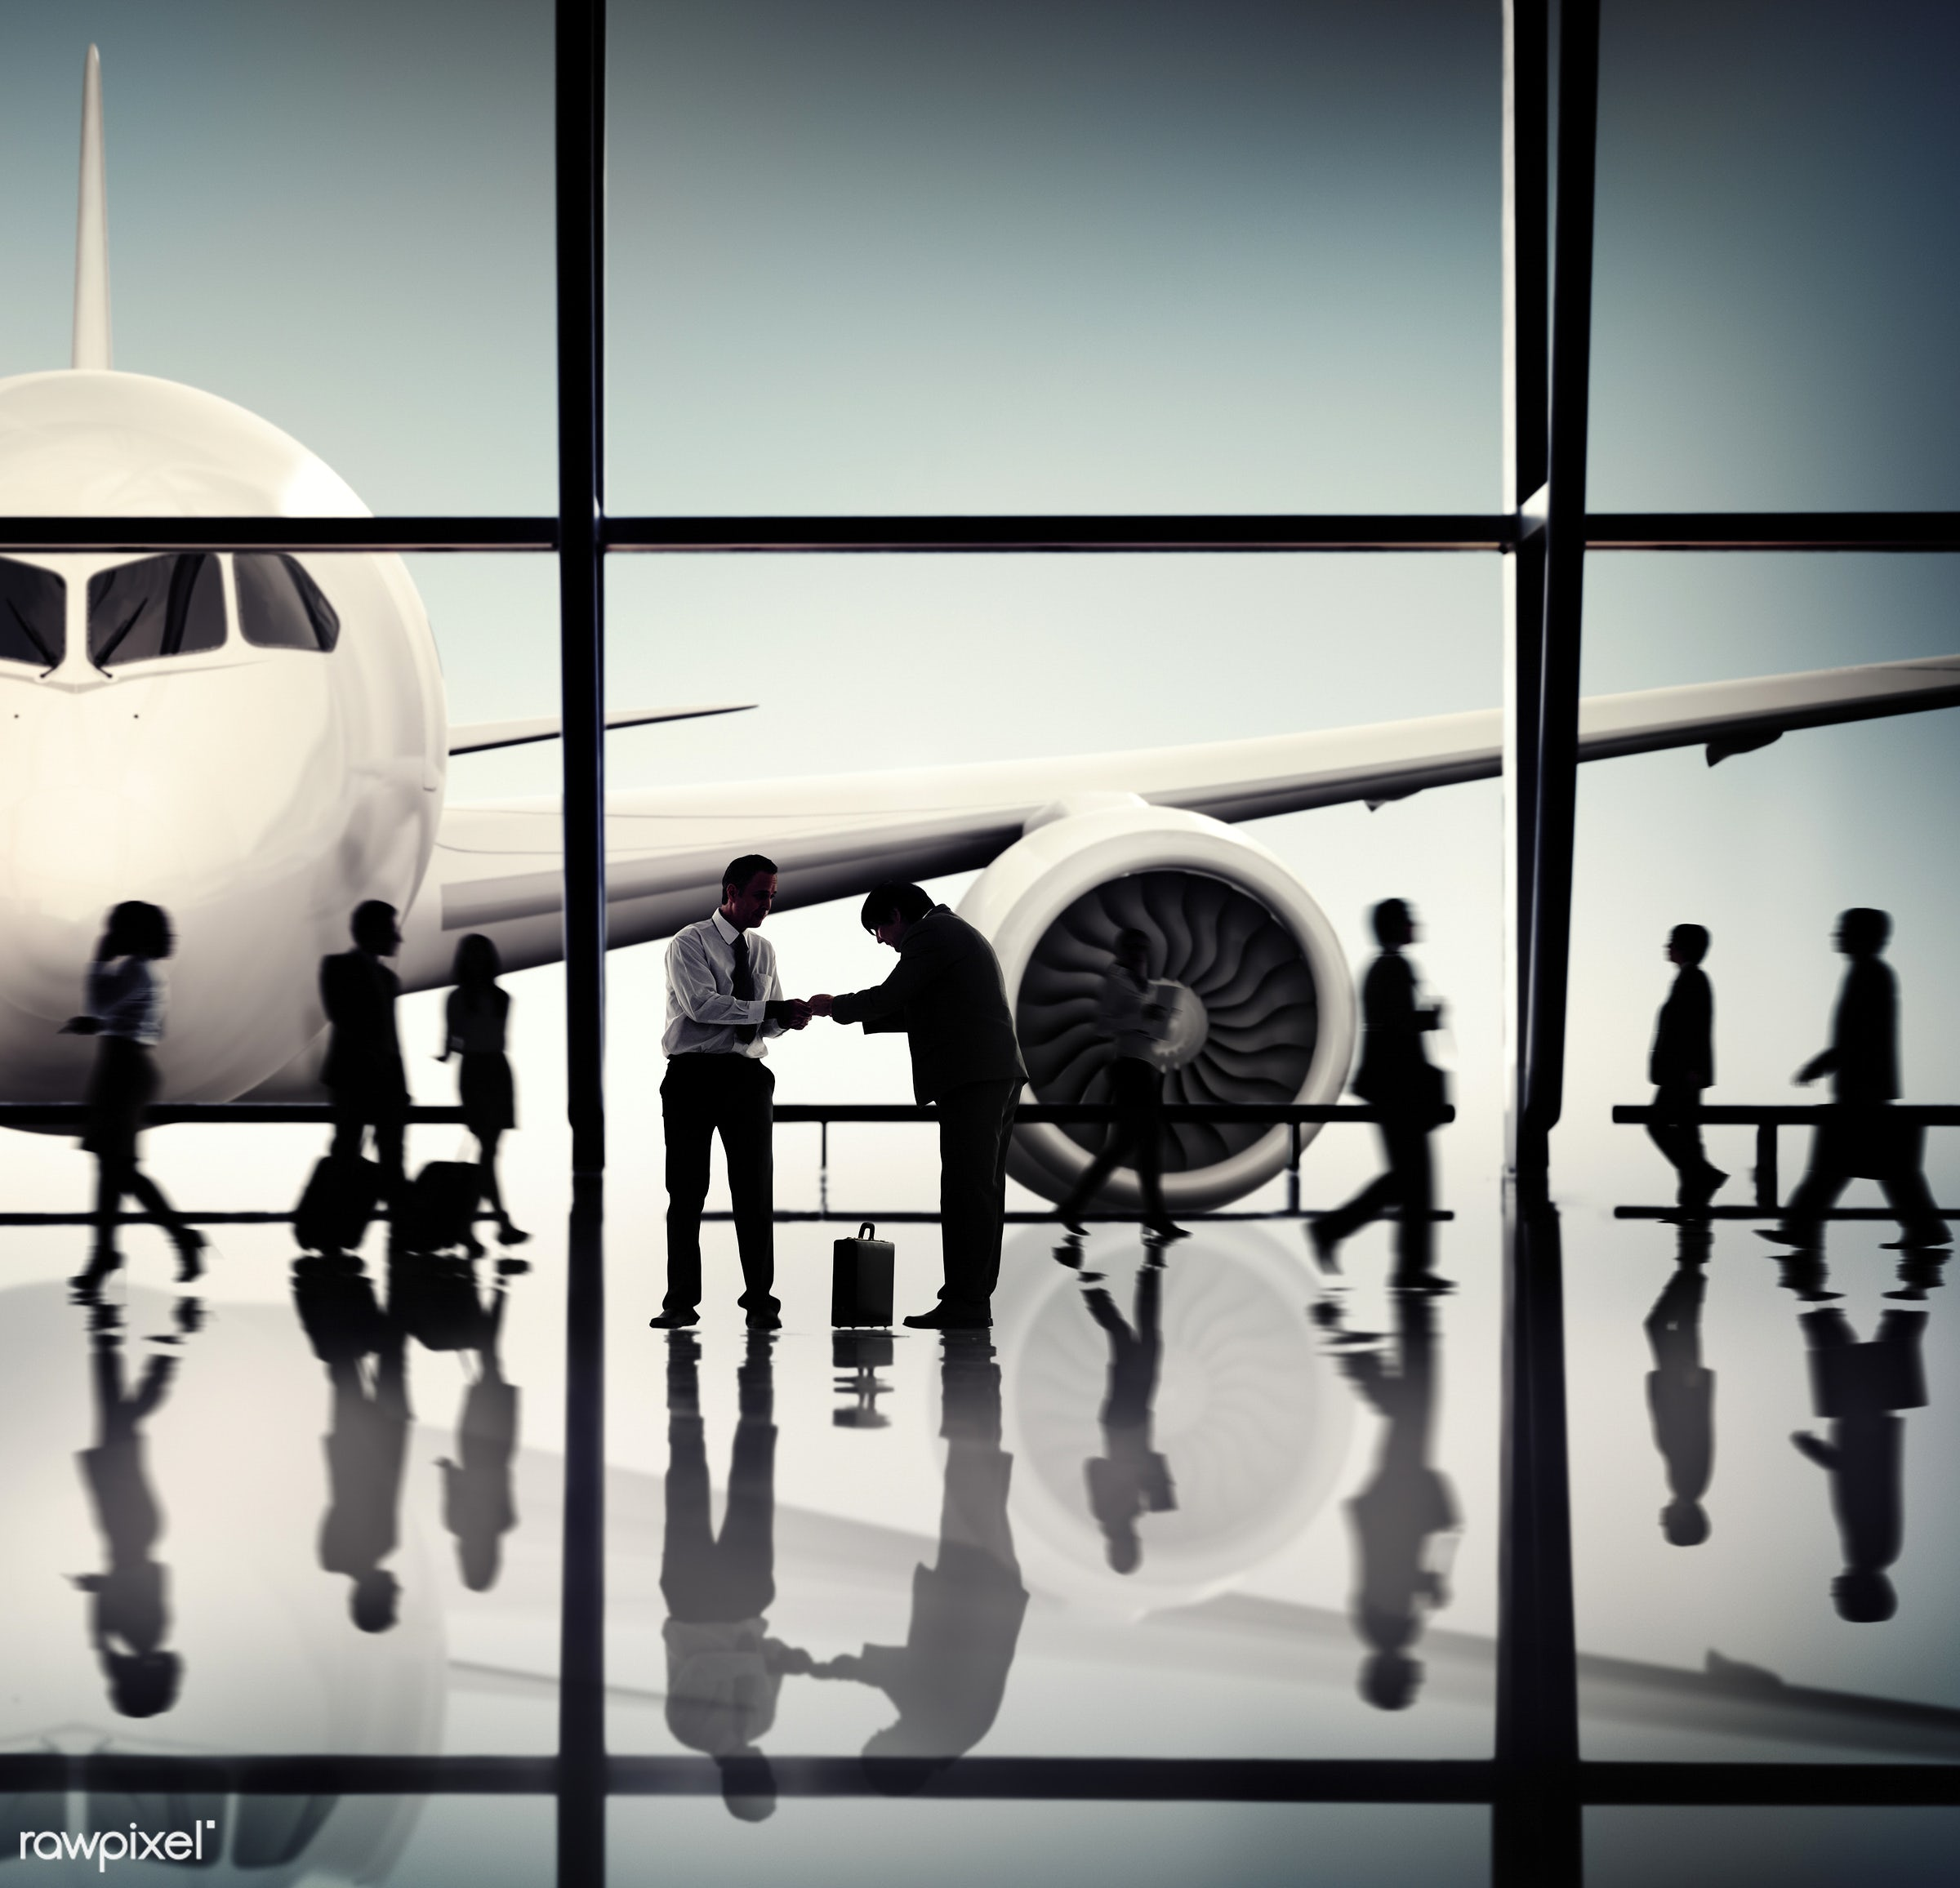 aircraft, airplane, airport, business people, business travel, businessmen, businesswomen, charity, communication,...